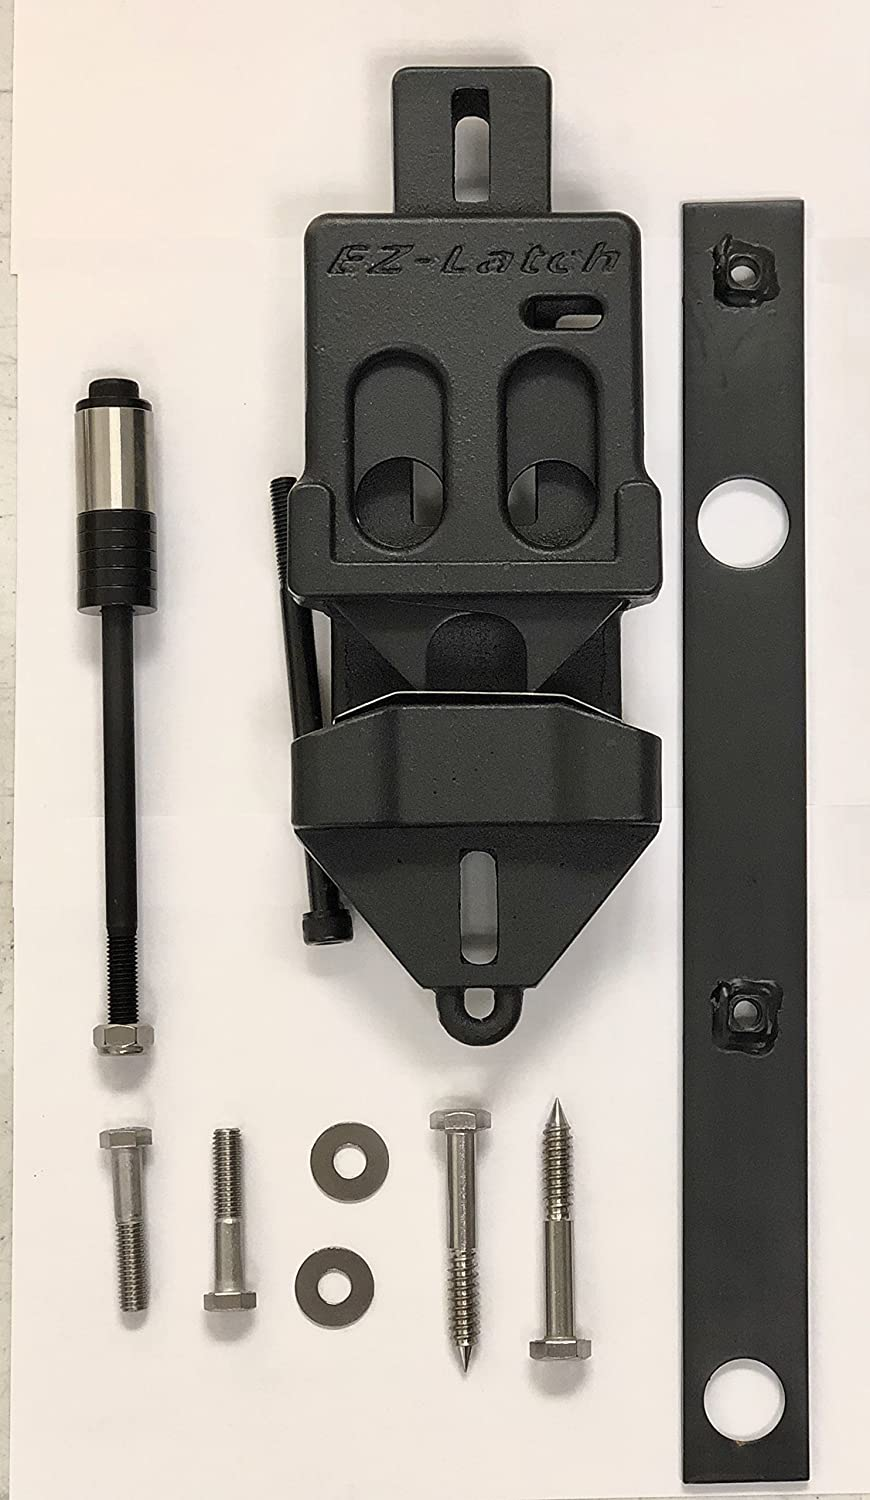 EZLatch Gate Latch System kit